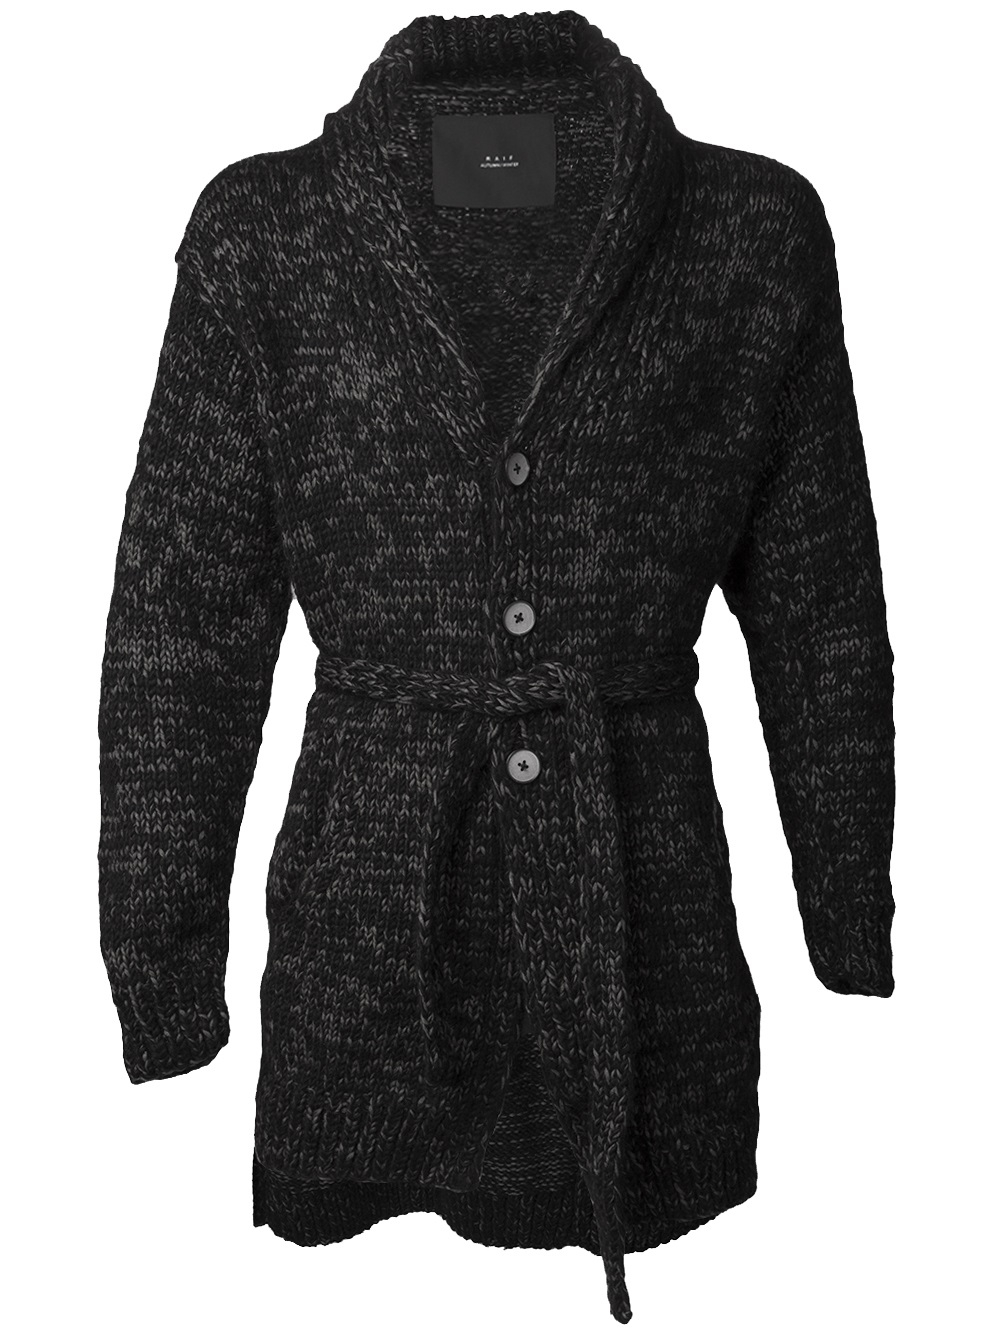 Raif adelberg Cashmere Wrap Cardigan in Black for Men | Lyst